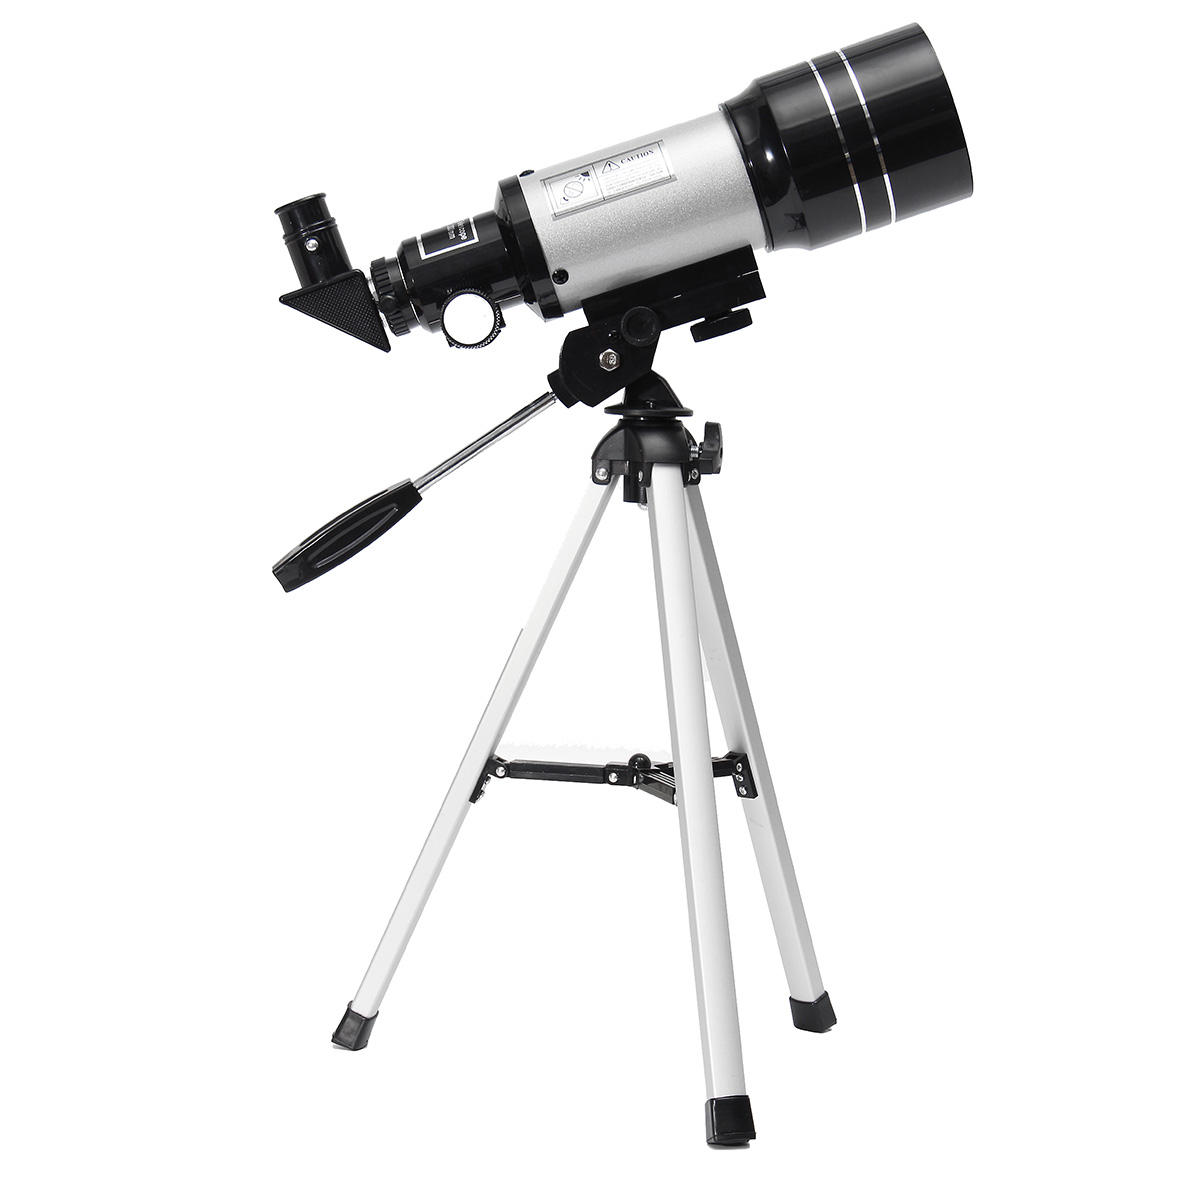 Outdoor F30070M HD Monocular High Definition Terrestrial Astronomical Telescope With Tripod